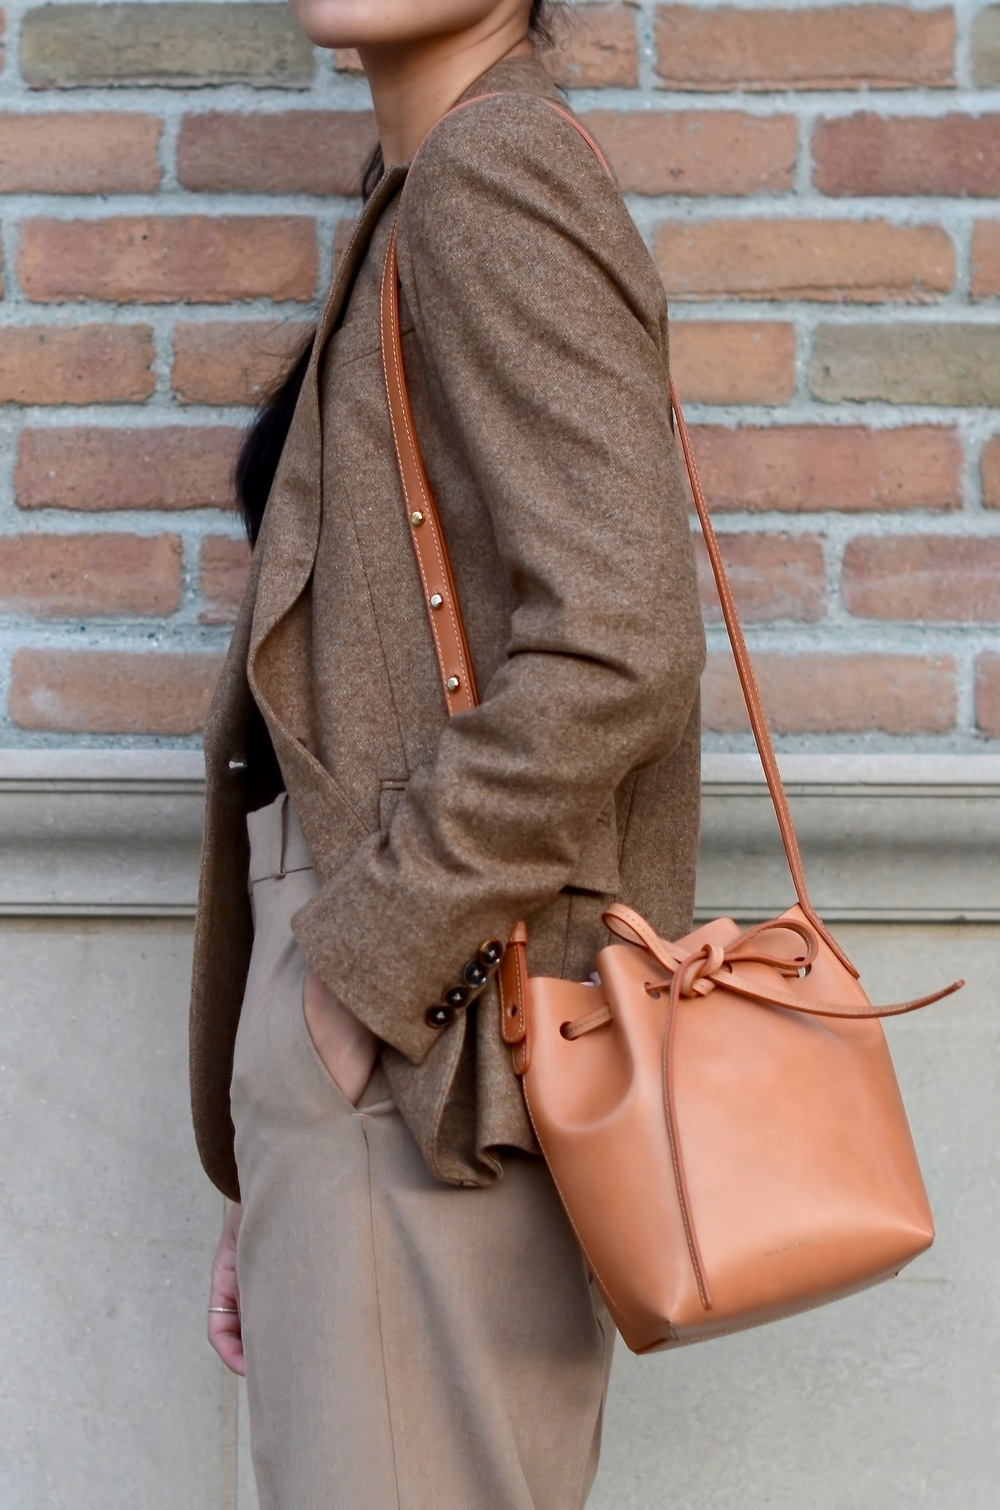 Just Goh With It-Outfit-shopstyle-dressforsuccess-zara-camel-wide-leg-pants-massimo-dutti-blazer-mansur-gavriel-mini-bucket-bag-6.jpg